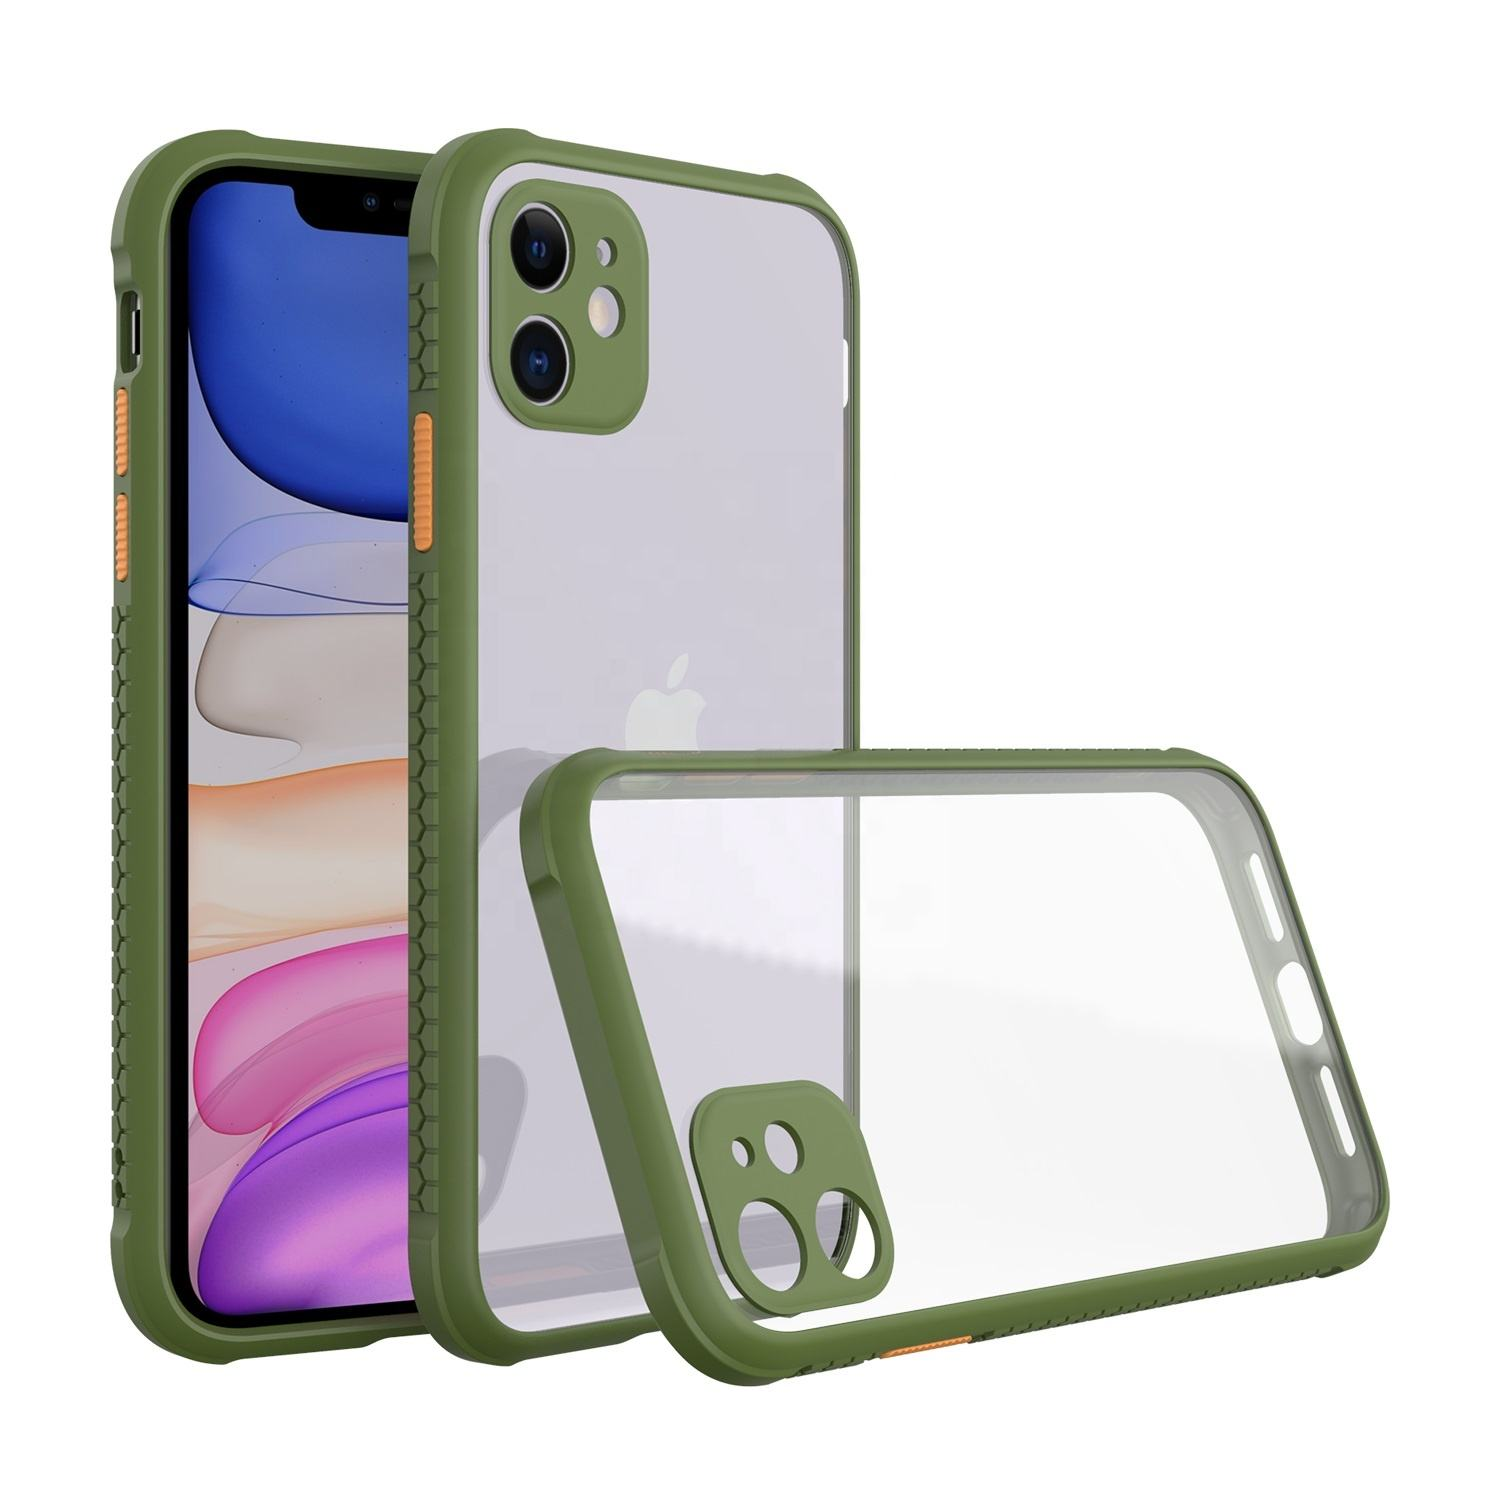 Mobile Cover Supplier Shock Proof Acrylic Hand Phone Case with TPU Frame for Apple iPhone 11 Pro Max XS XR X 9 8 Plus 7 SE 2020